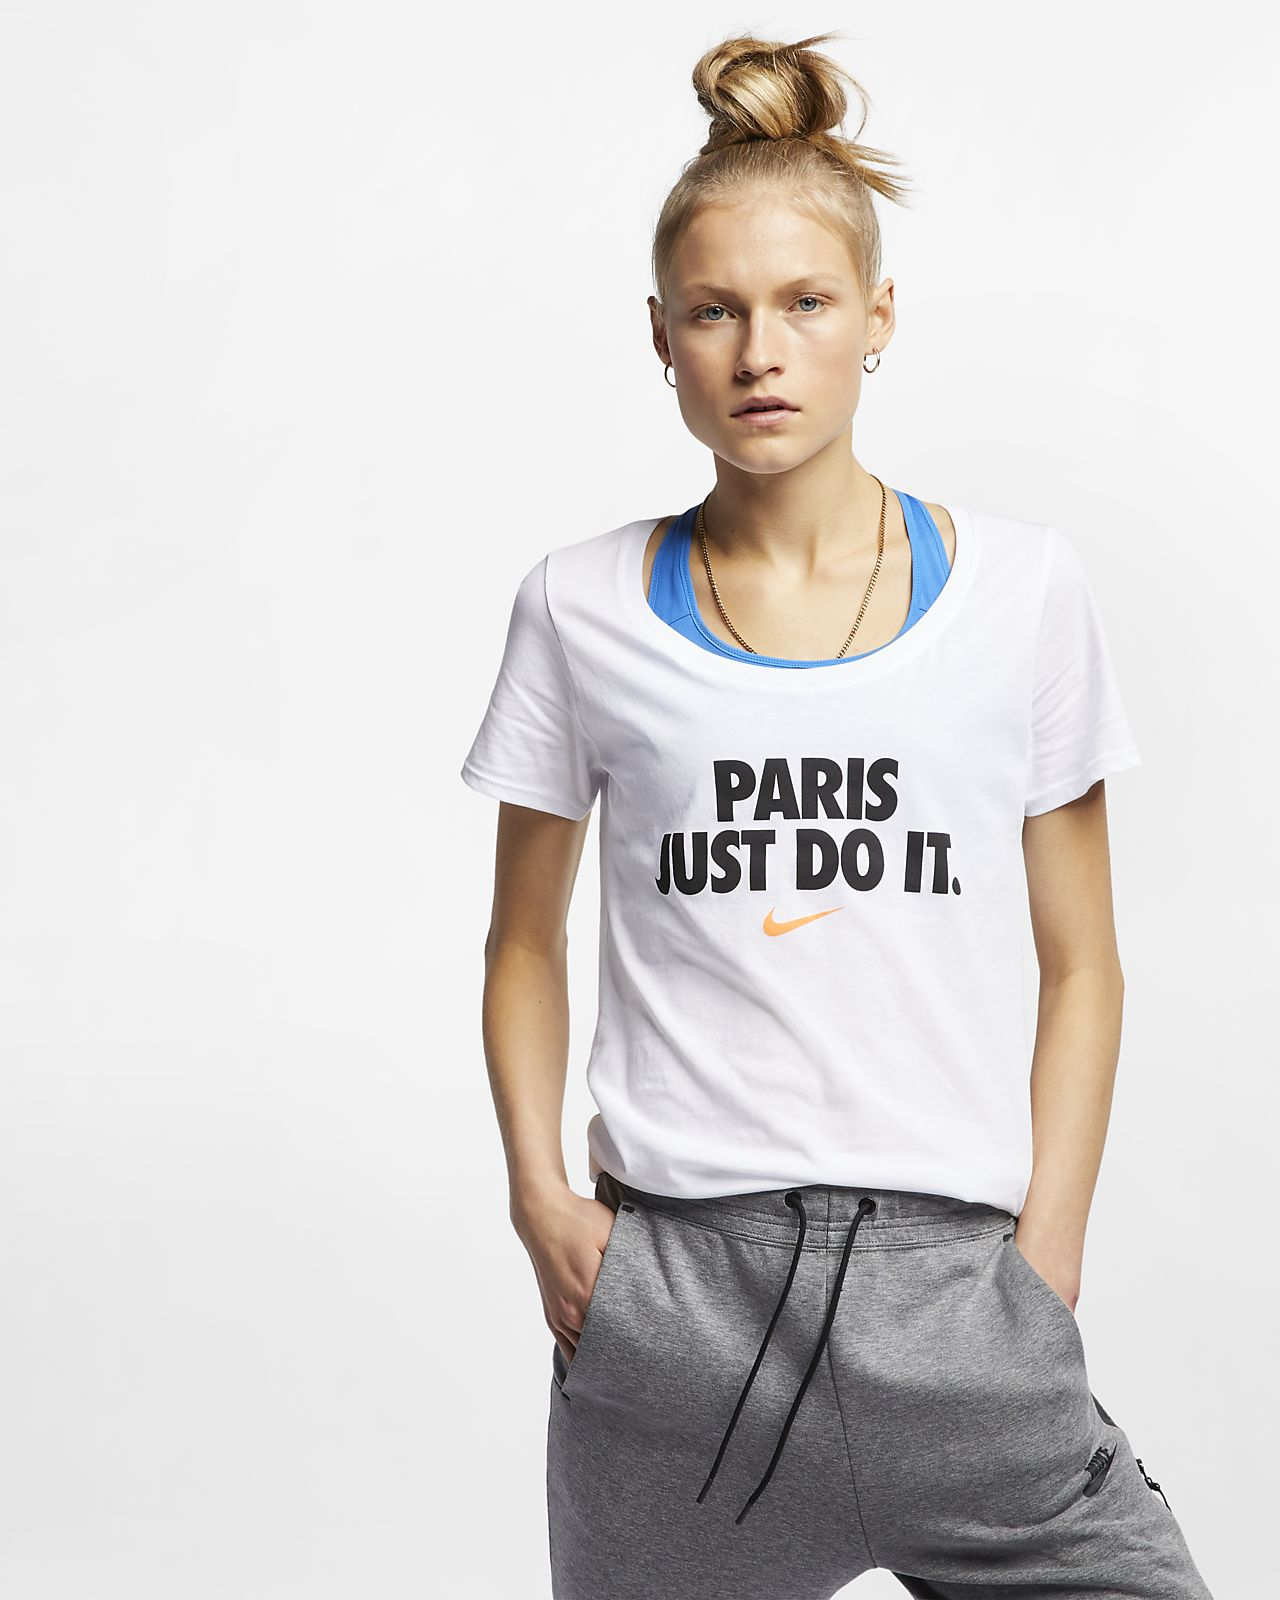 Nike City (Paris) Women's T-Shirt